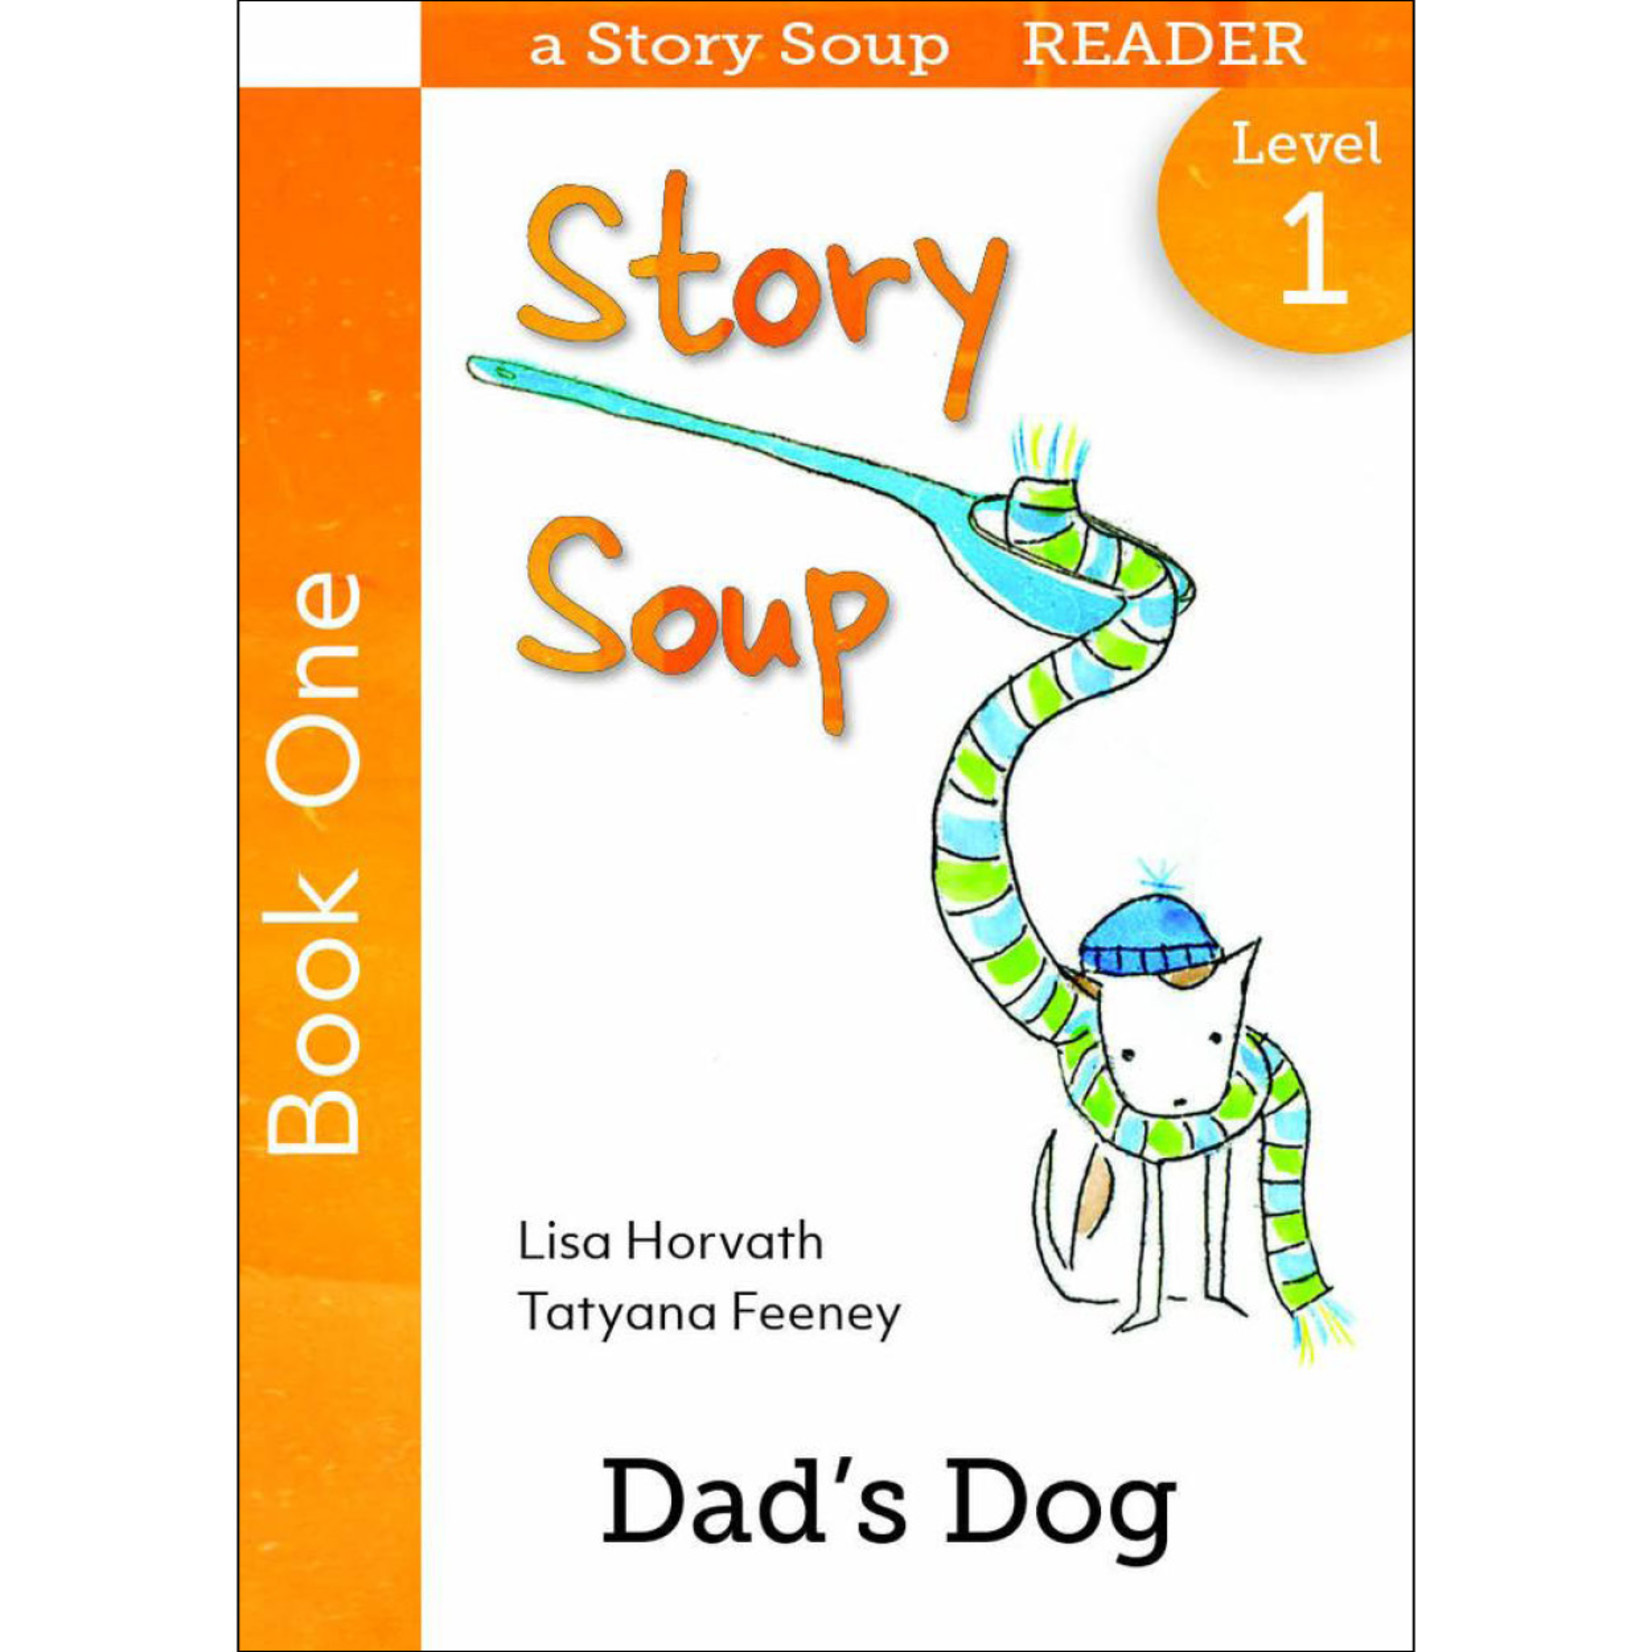 Dad's dog - A Story Soup reader